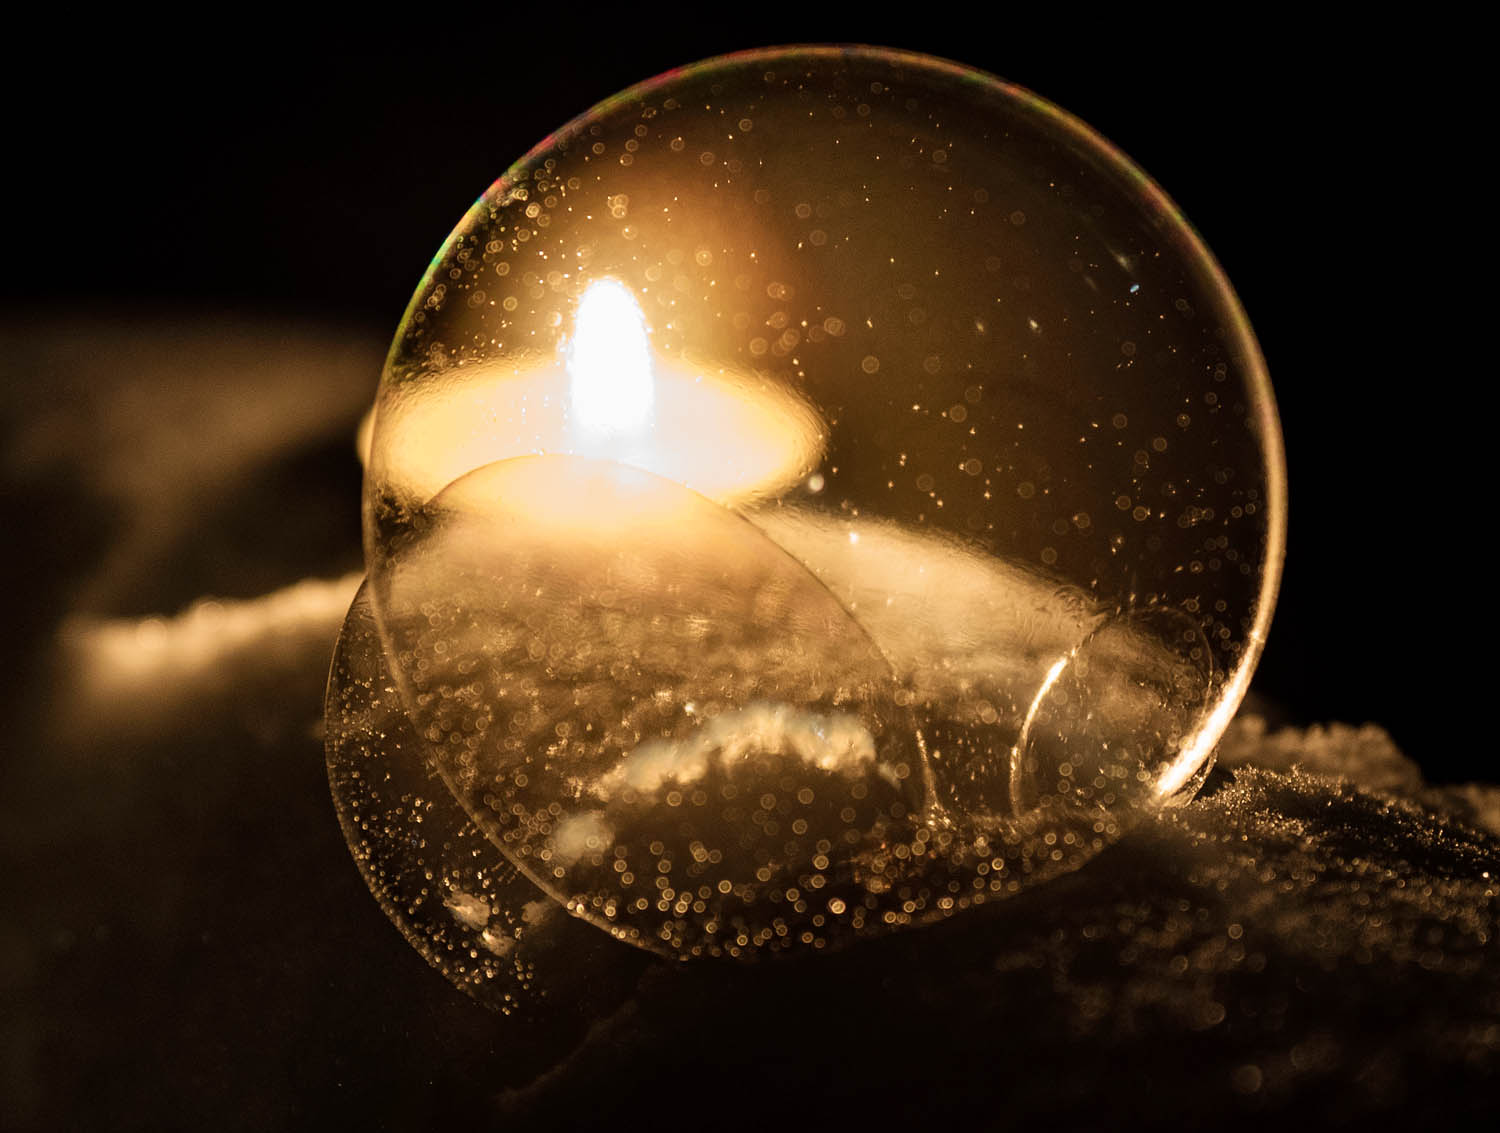 Image: Using a candle to illuminate a bubble at night